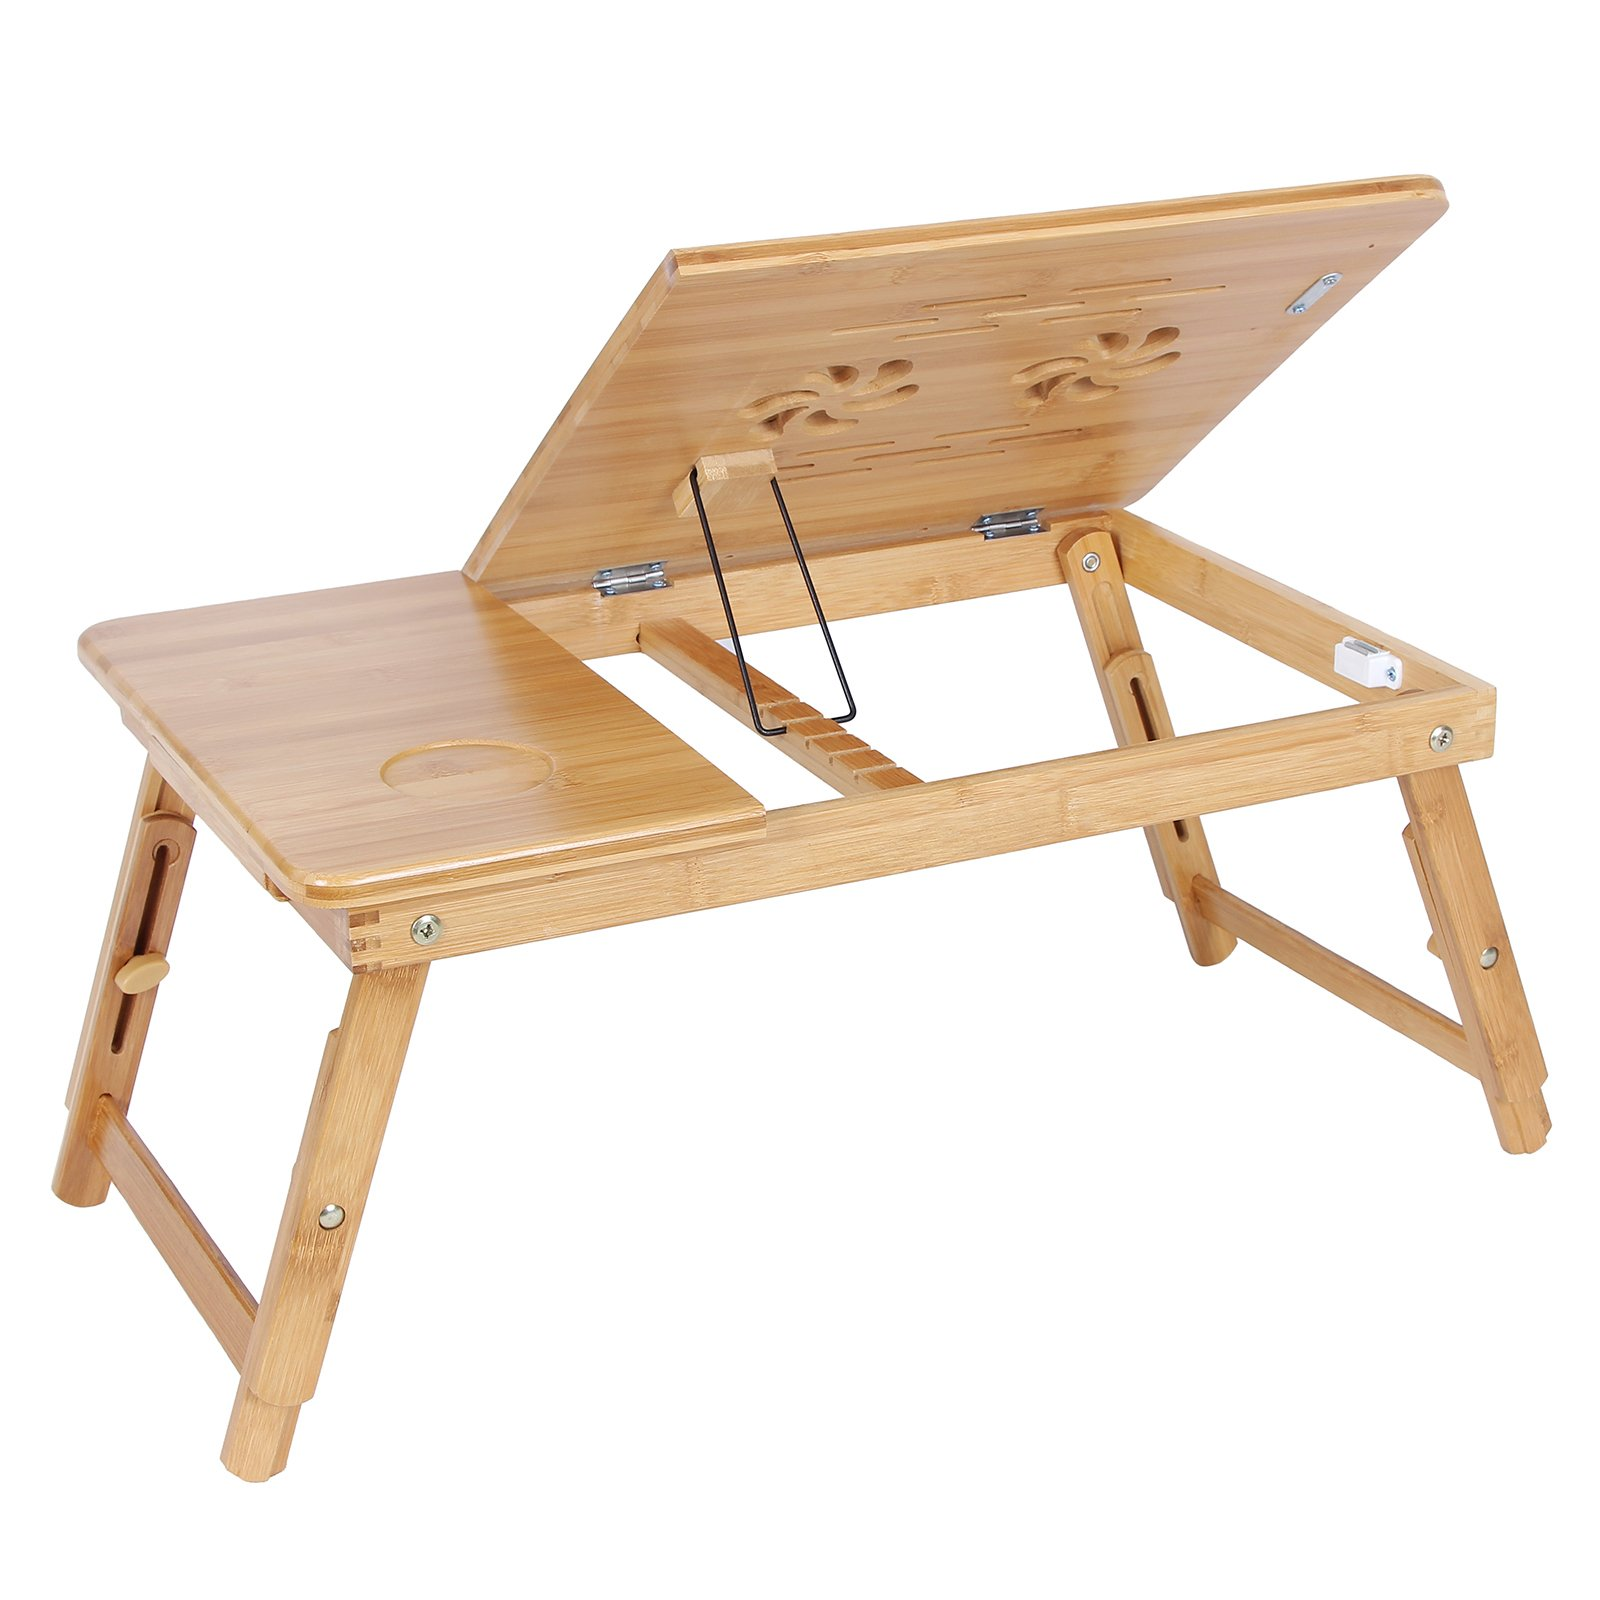 SONGMICS Bamboo Laptop Desk Serving Bed Tray Tilting Top ULLD001 by SONGMICS (Image #5)